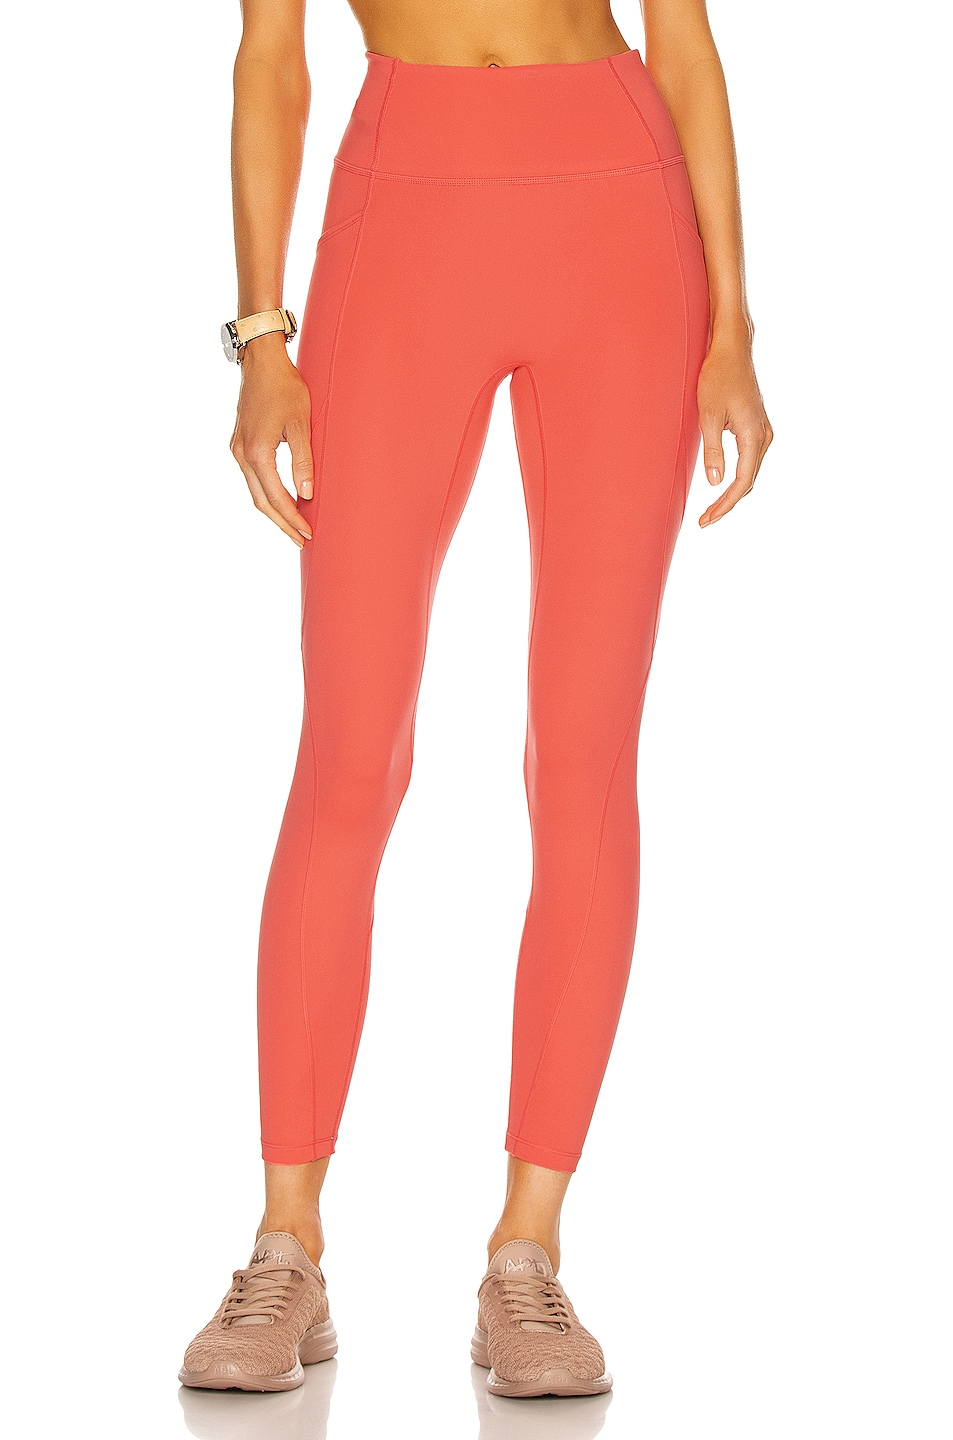 Image 1 of Le Ore Lucca High Rise Pocket Legging in Glow